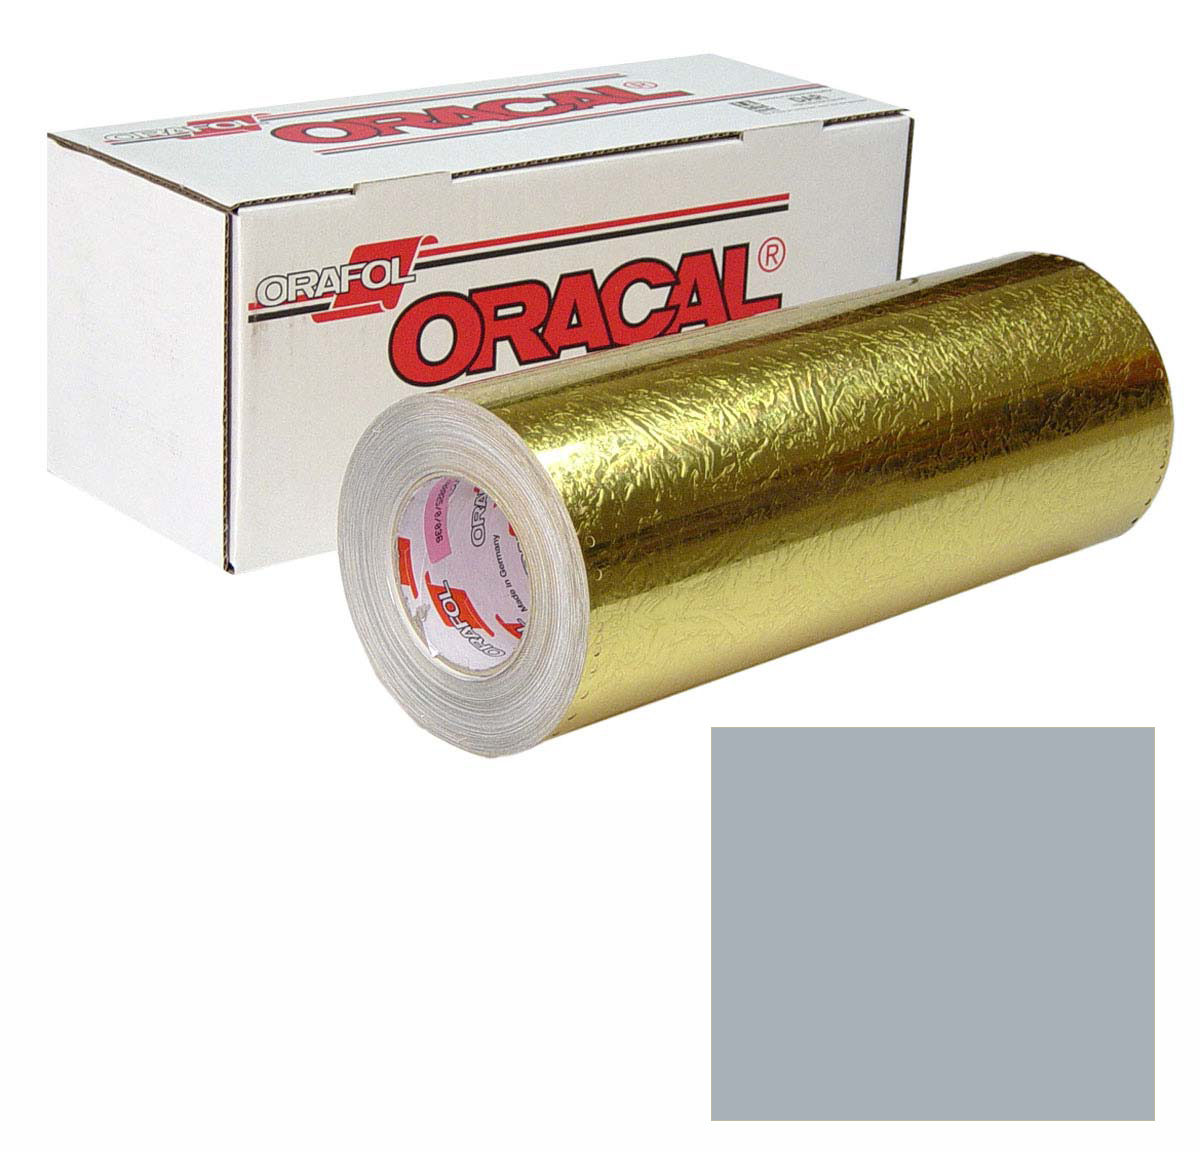 photograph relating to Oracal Inkjet Printable Vinyl titled Order Oracal 383 Ultraleaf Vinyl